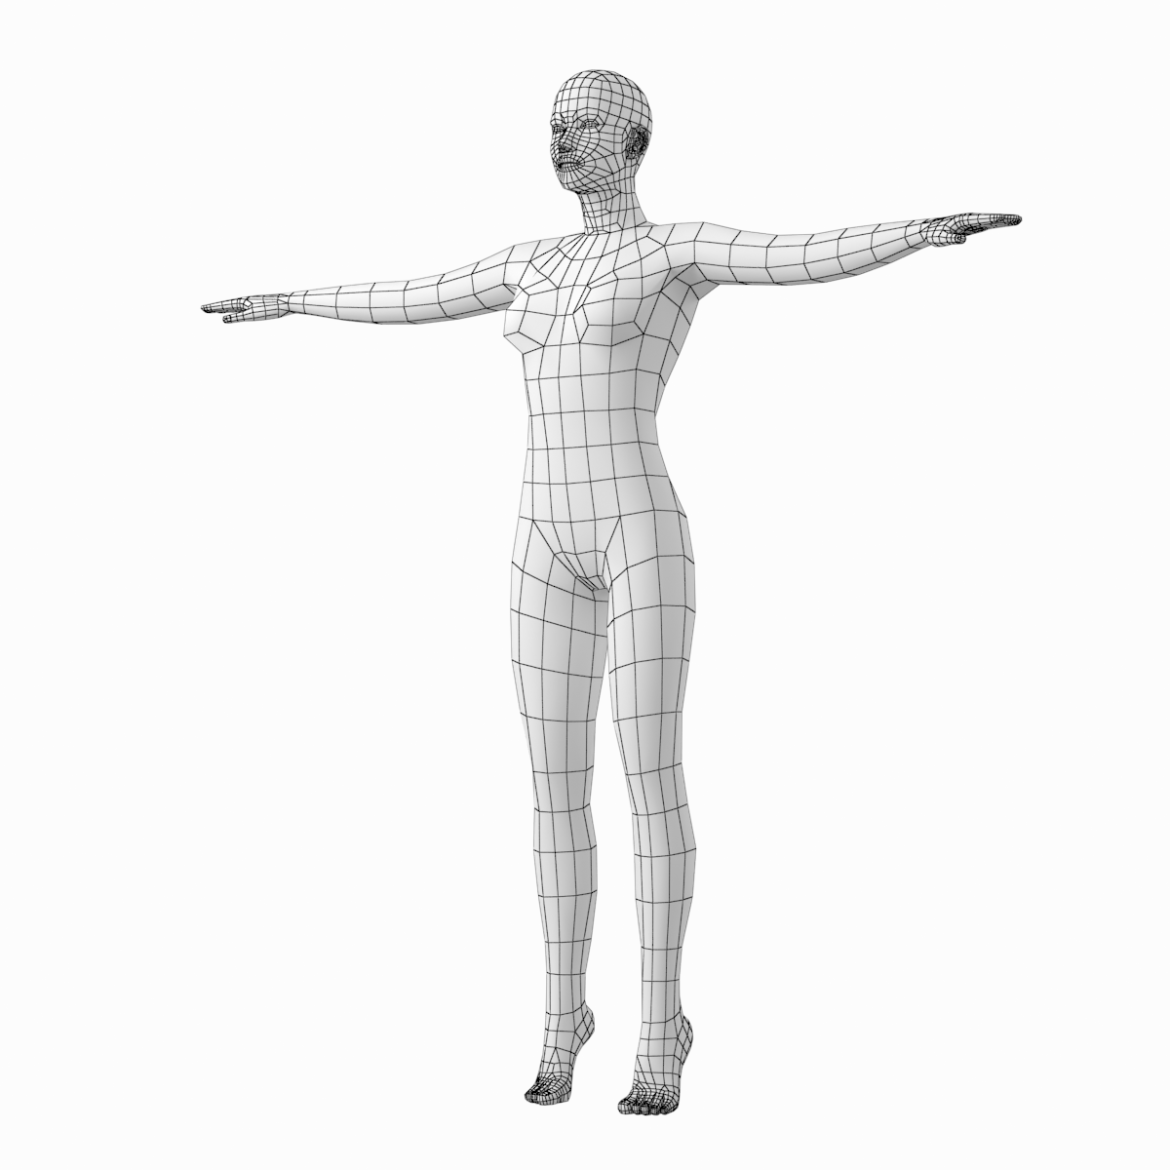 female body on toes base mesh in t-pose 3d model txt 3ds c4d dae dwg dxf fbx max ma mb obj stl png 305208